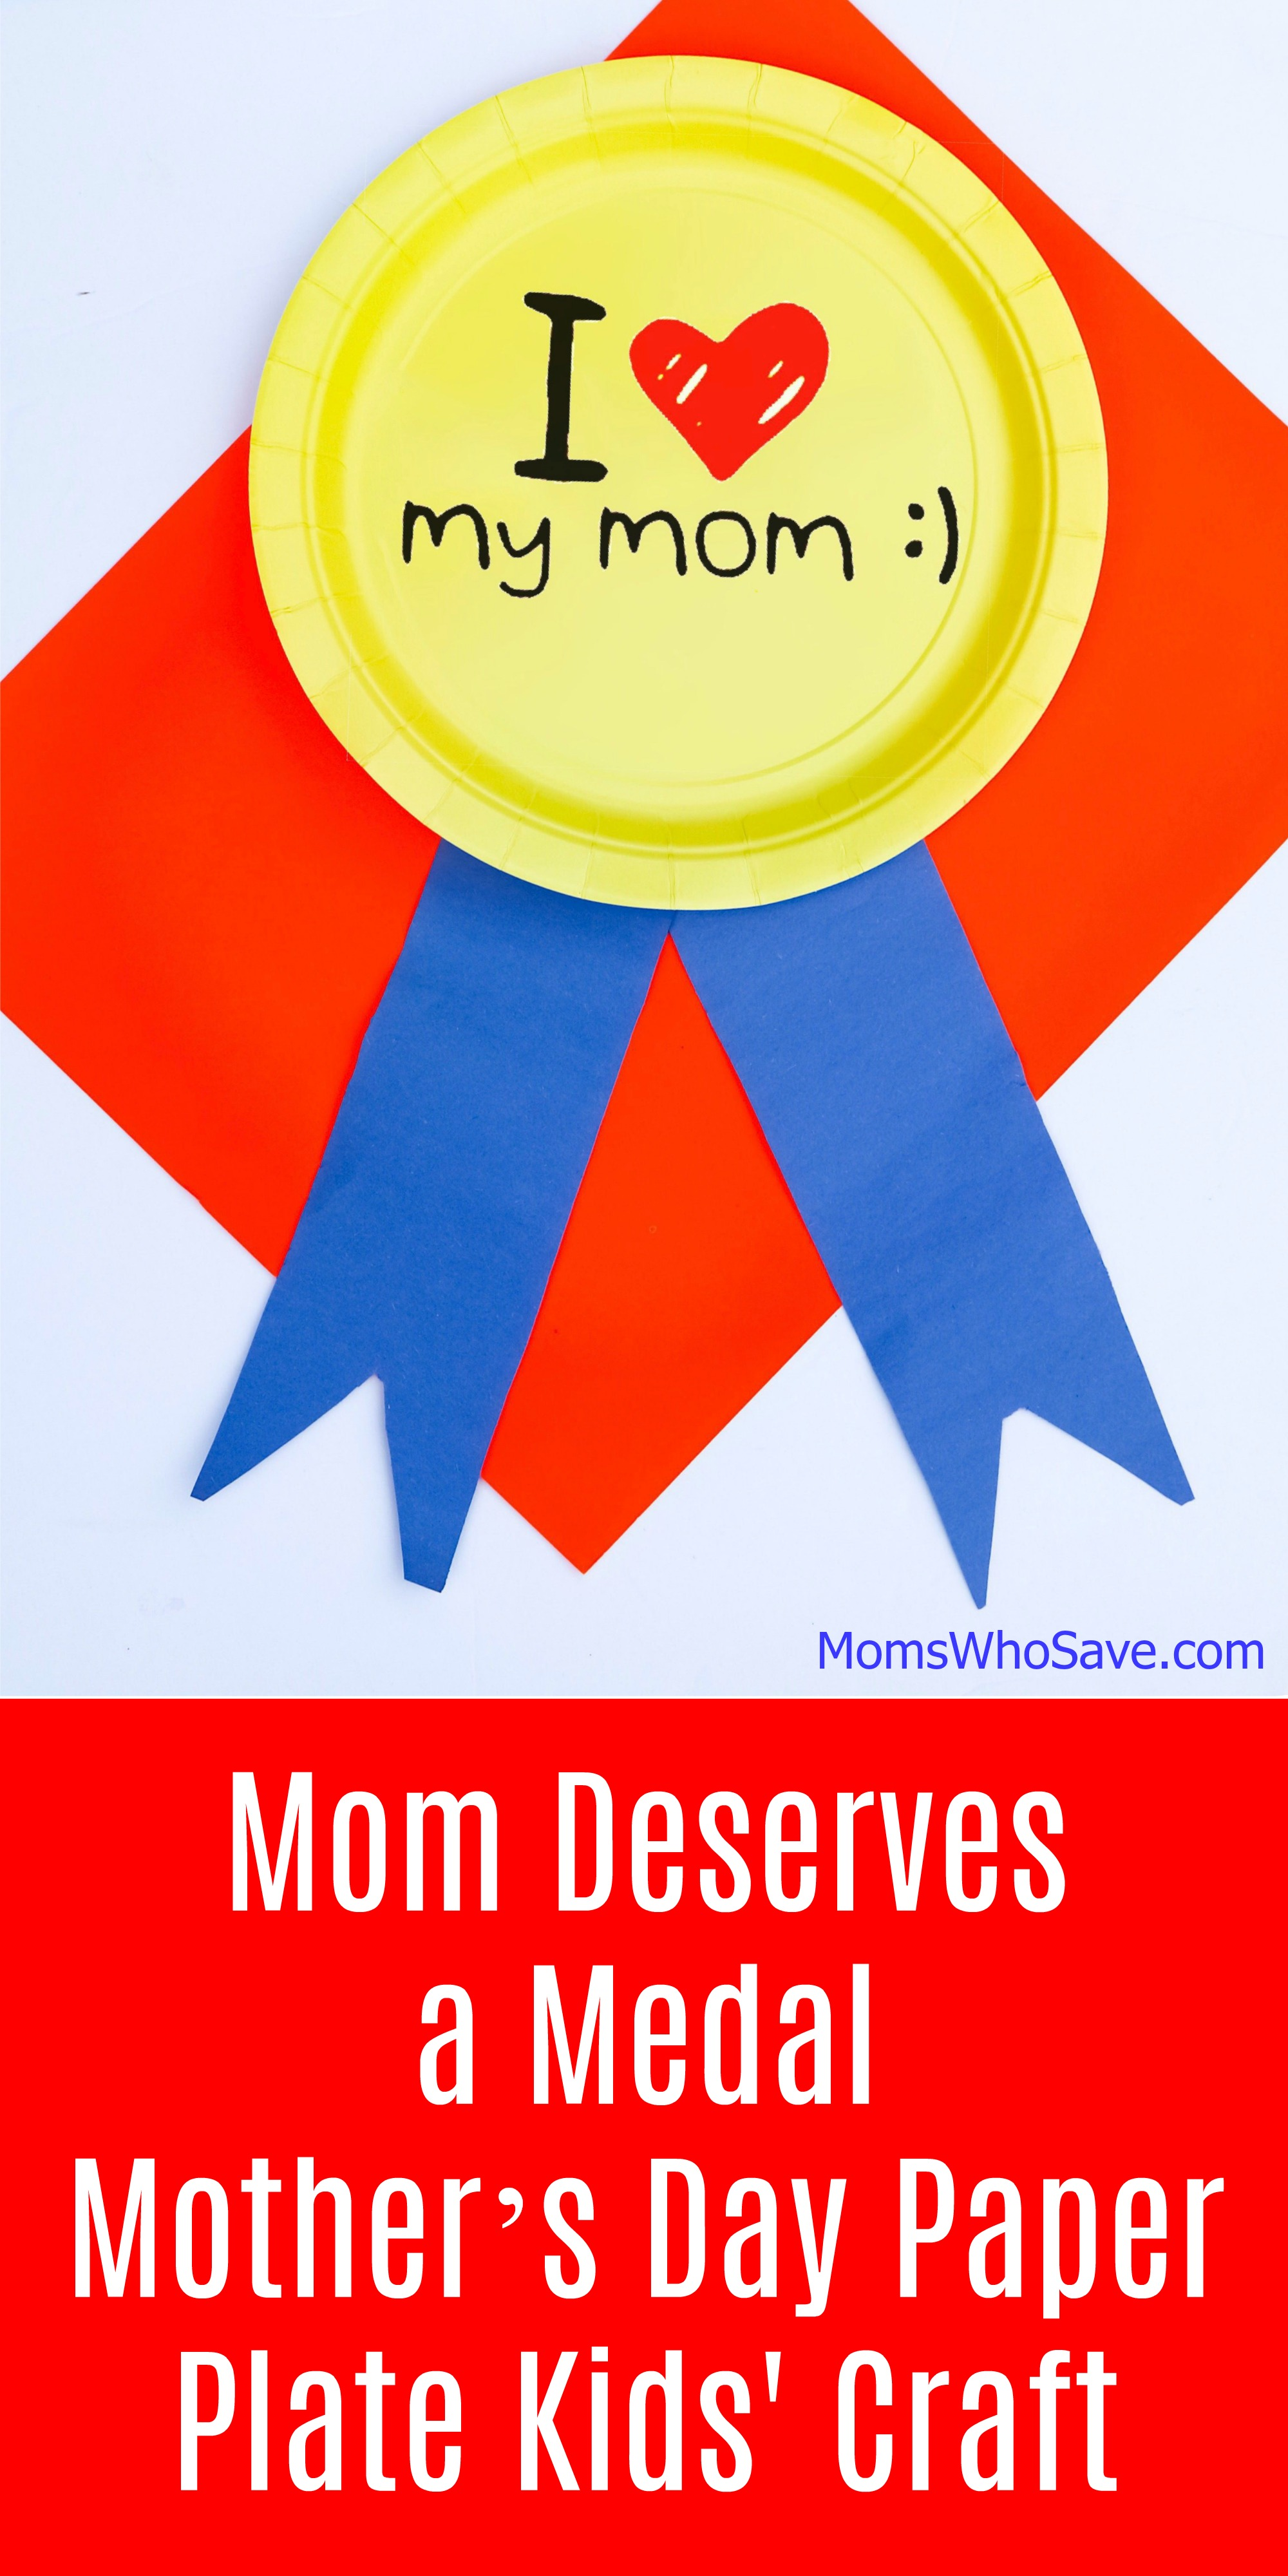 diy craft for mother's day